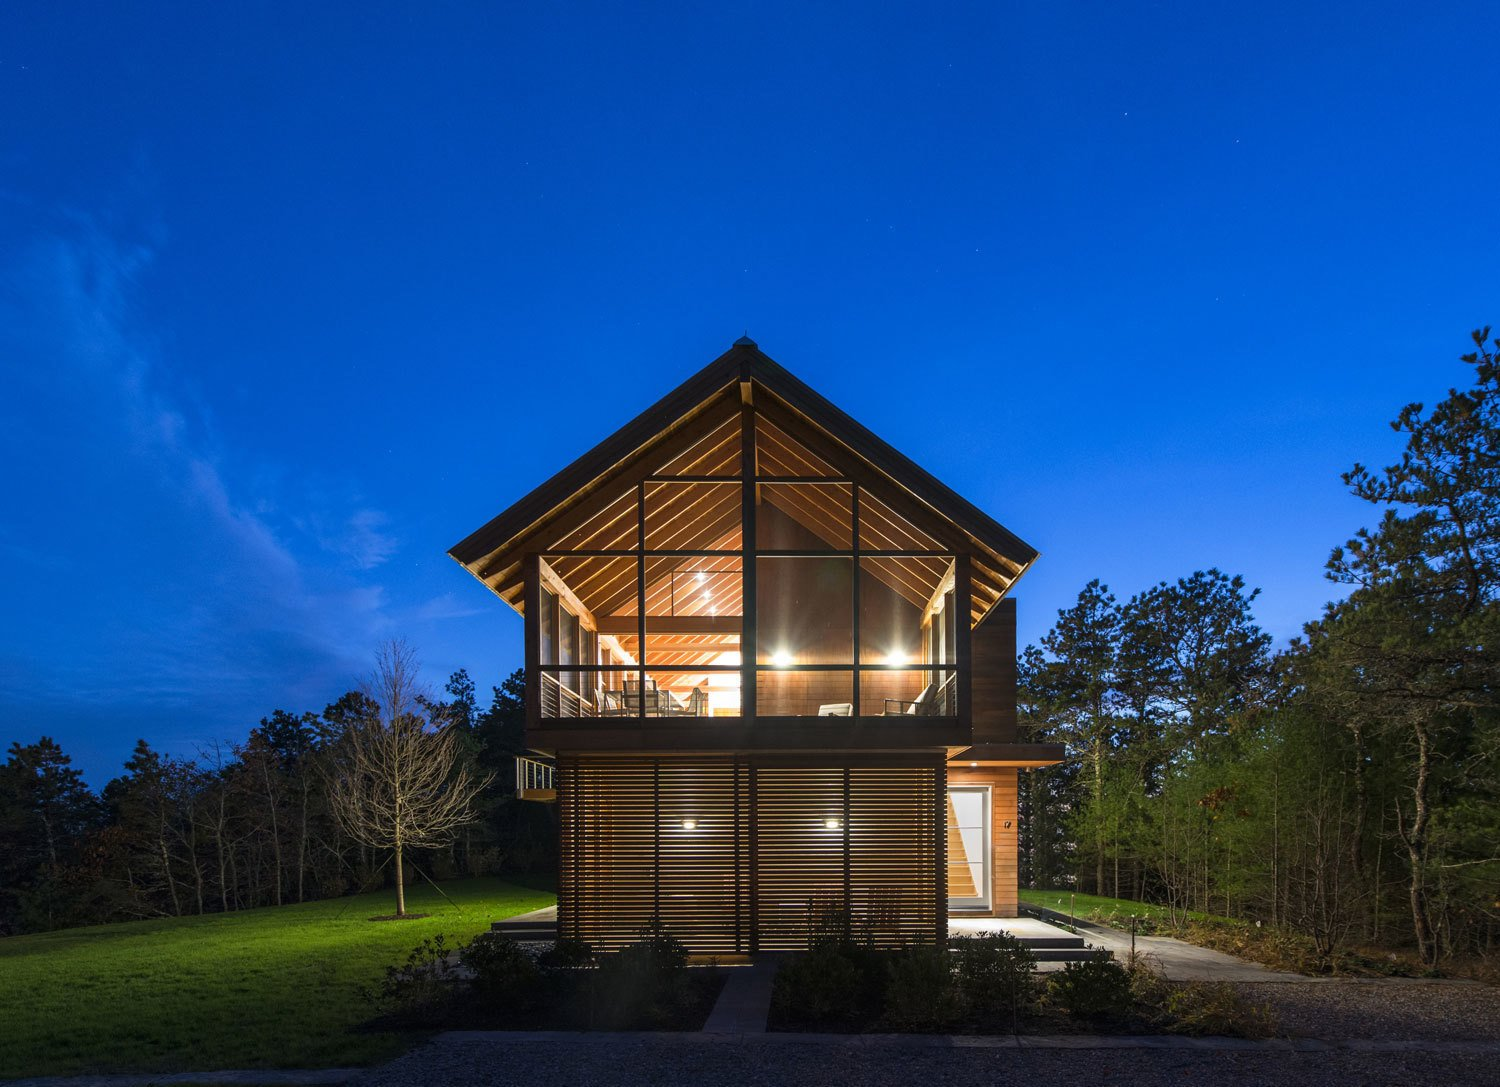 Exterior, Cabin Building Type, Wood Siding Material, House Building Type, and Glass Siding Material At night, the interior lighting casts the geometric window framing in silhouette.  Photo 37 of 101 in 101 Best Modern Cabins from Modern Gabled Cabins